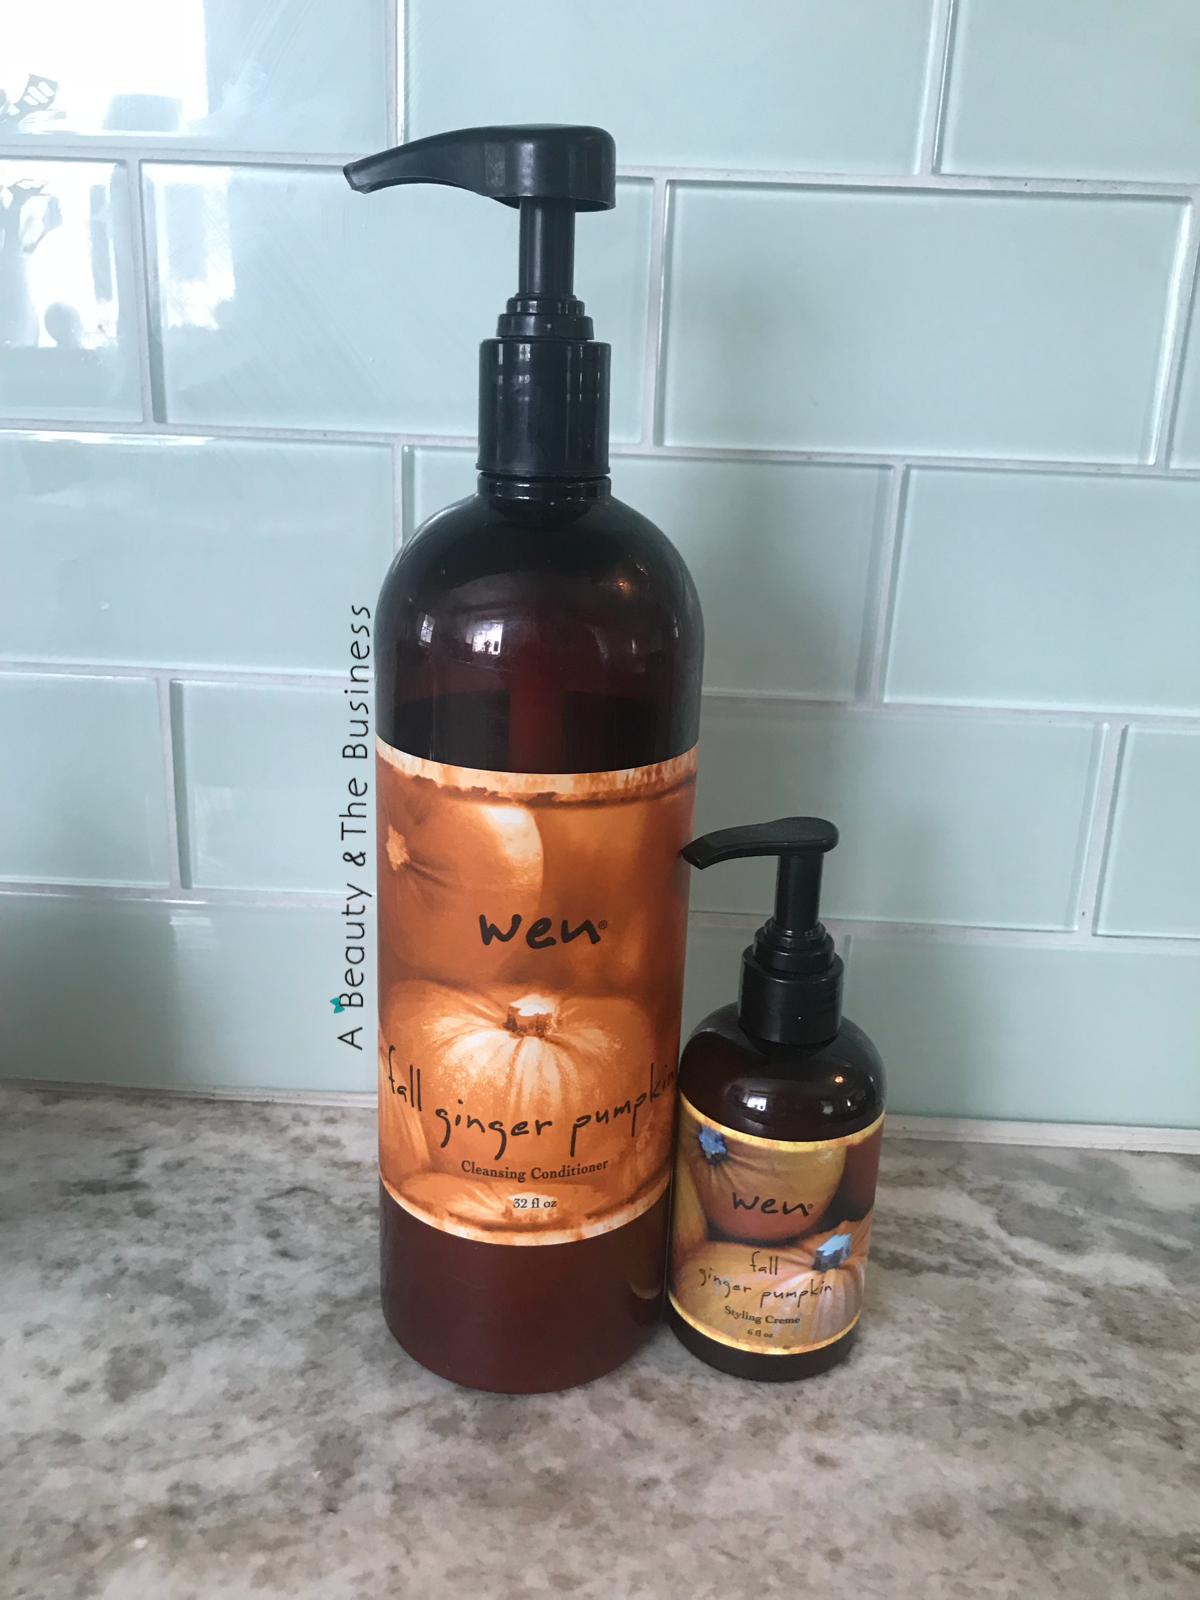 Wen Falll Ginger Pumpkin Cleansing Conditioner Review